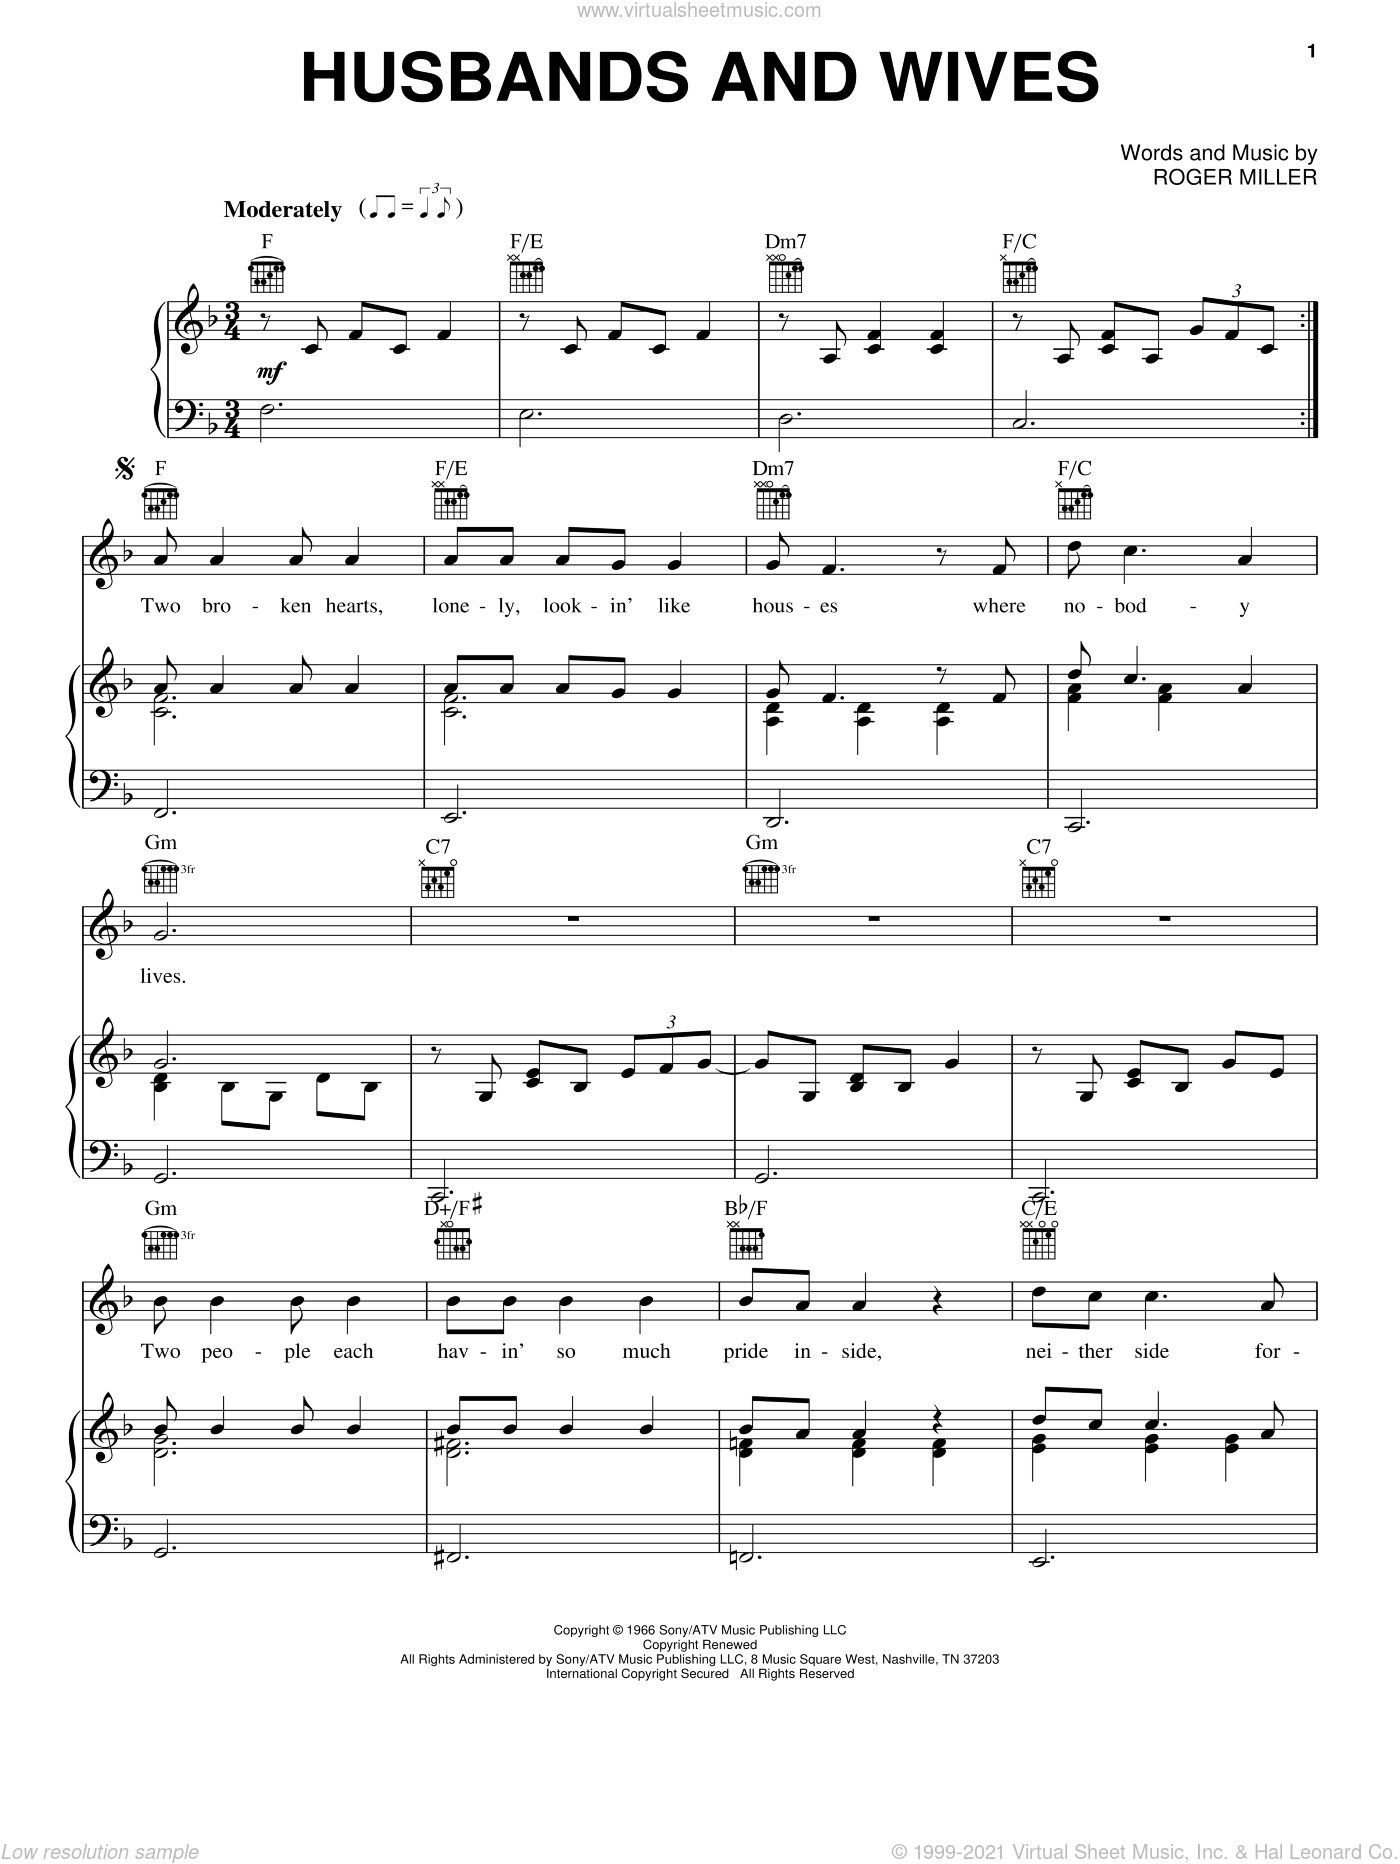 Husbands And Wives sheet music for voice, piano or guitar by Roger Miller and Brooks & Dunn, intermediate skill level